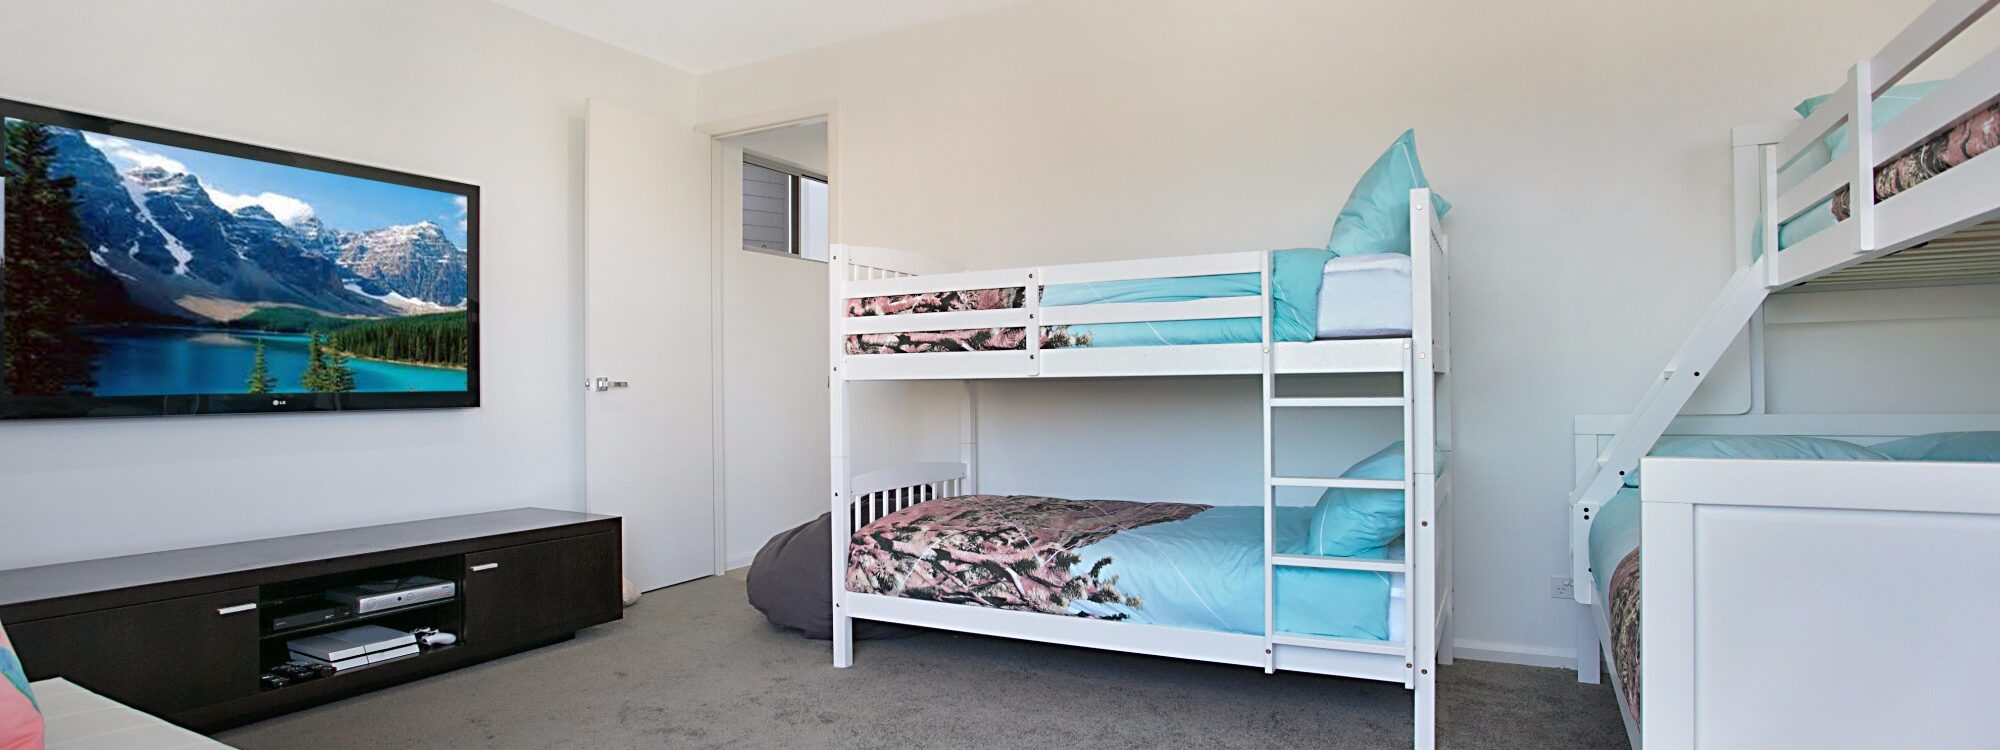 Pacific Breeze - Broadbeach - Bedroom 3 a kids room